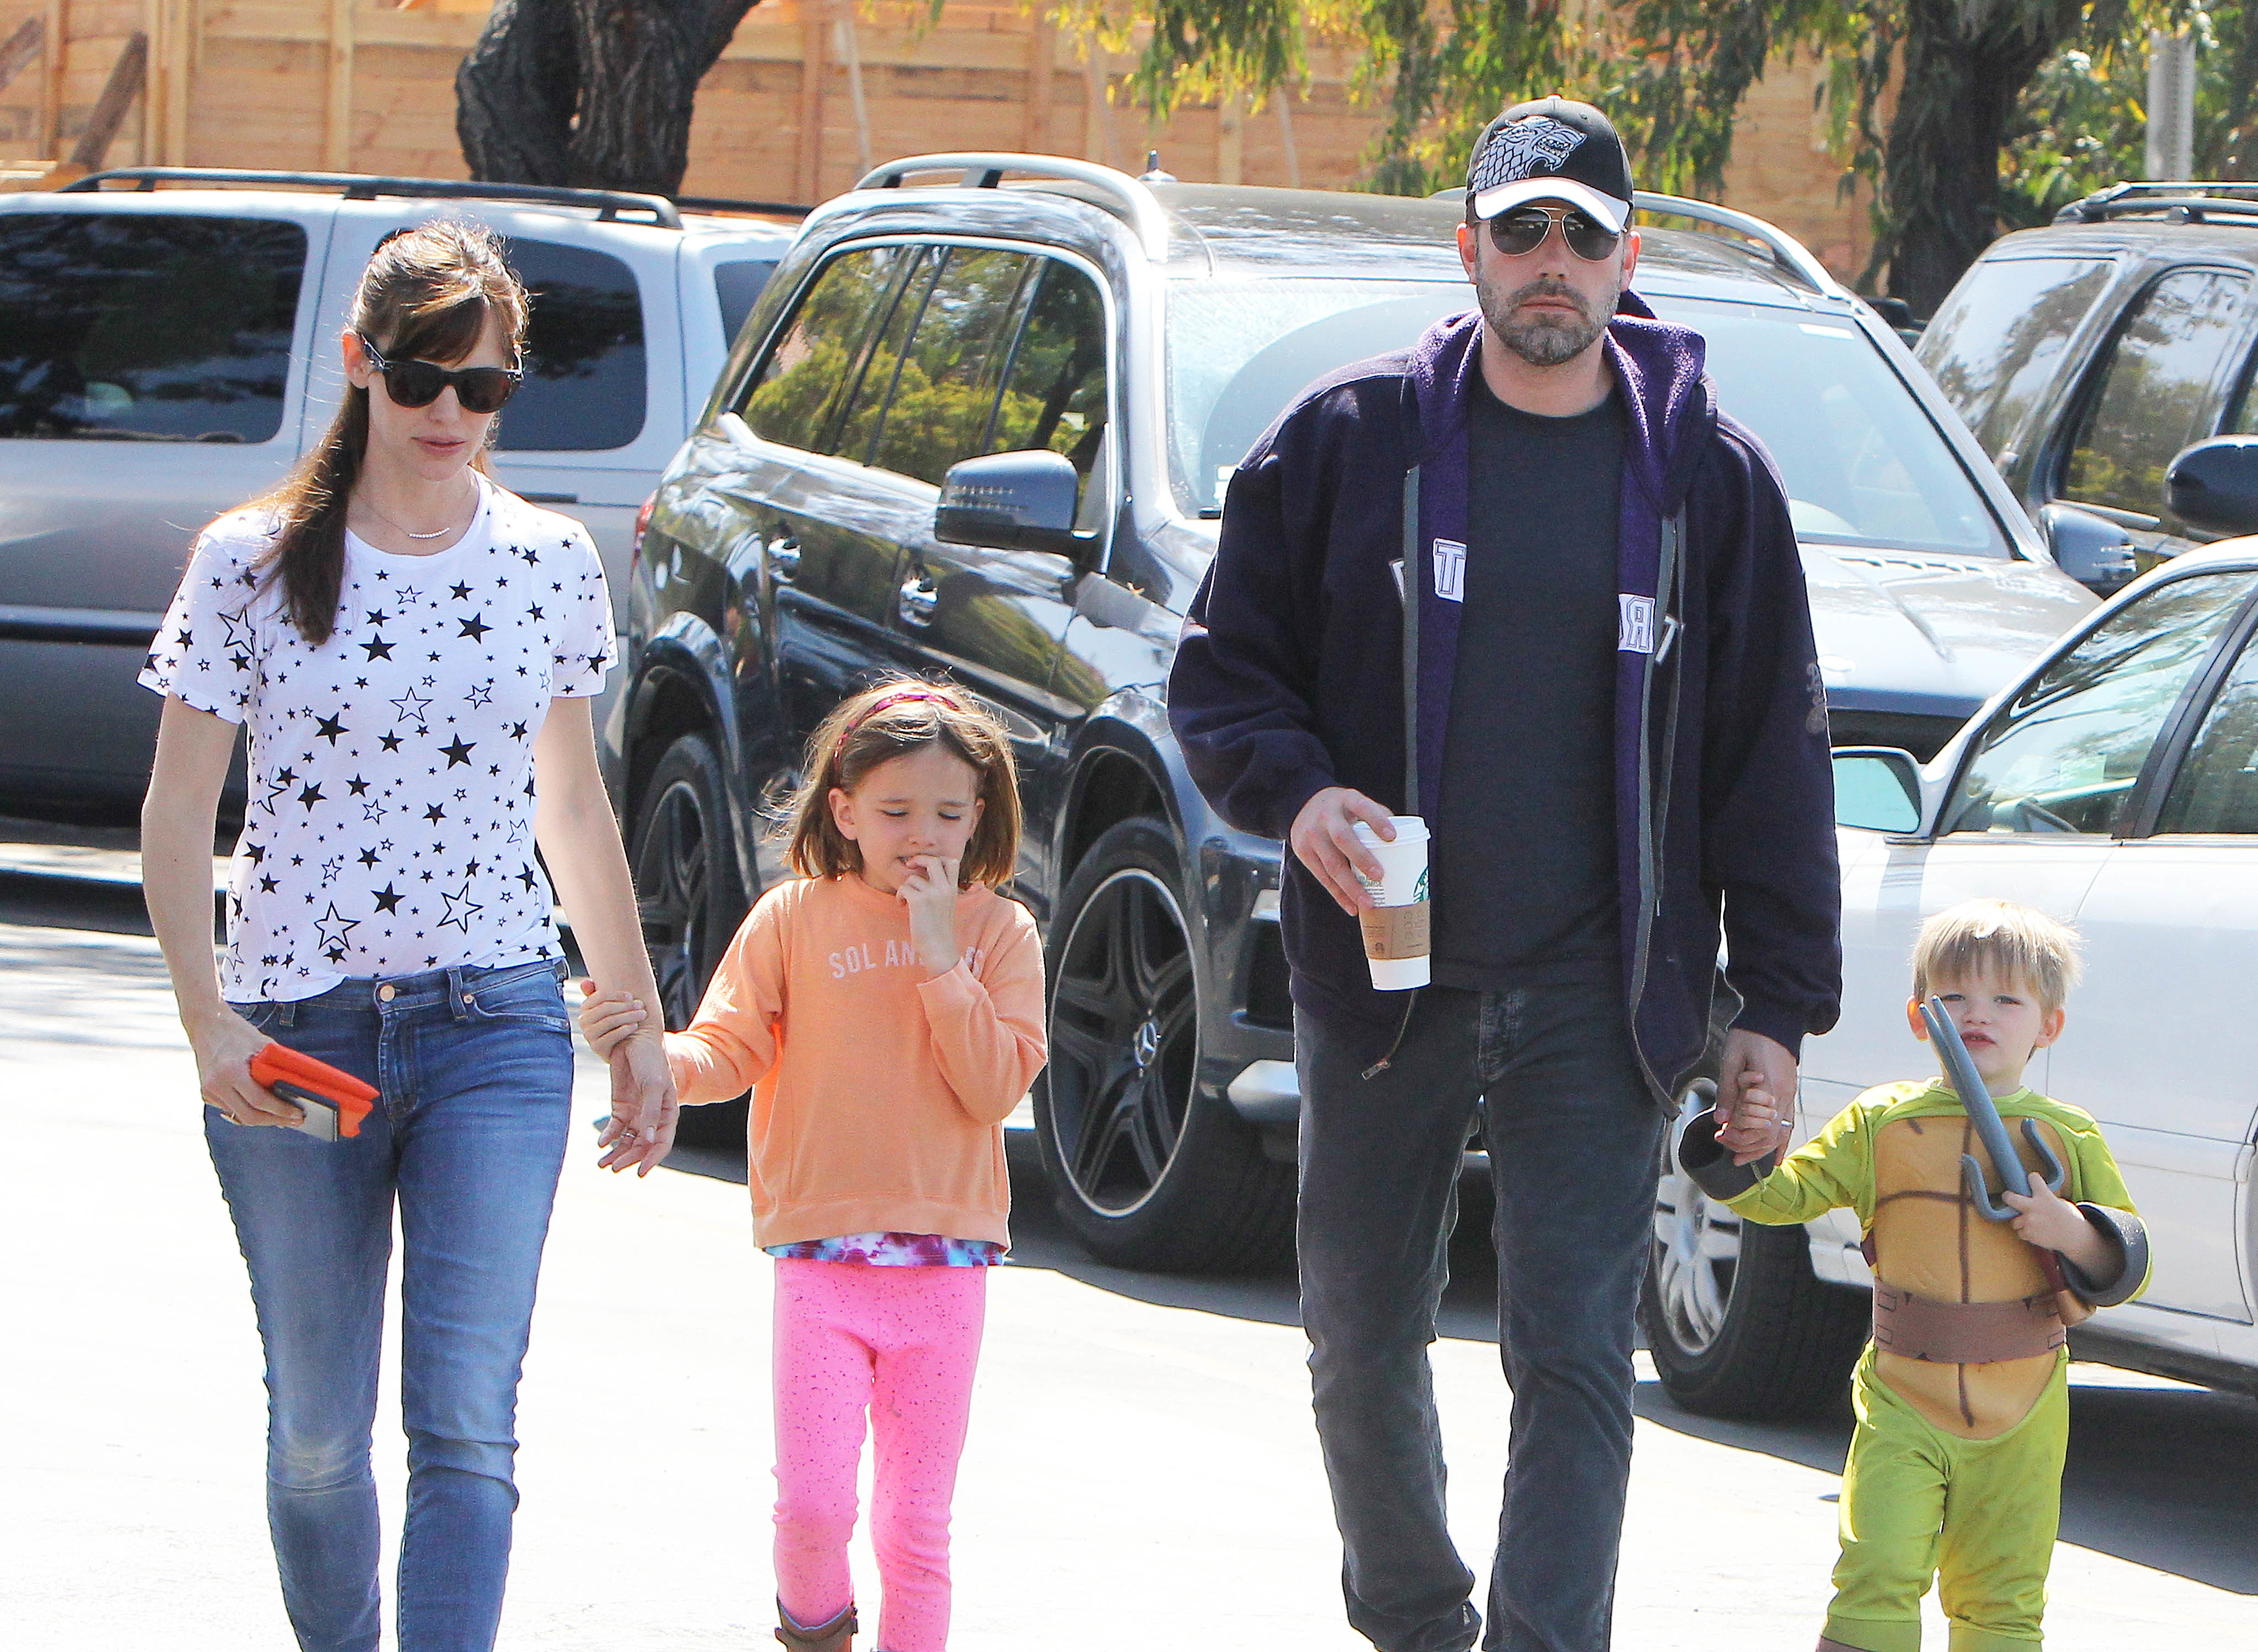 Ben and Jen step out with kids again amidst reports of marital woes